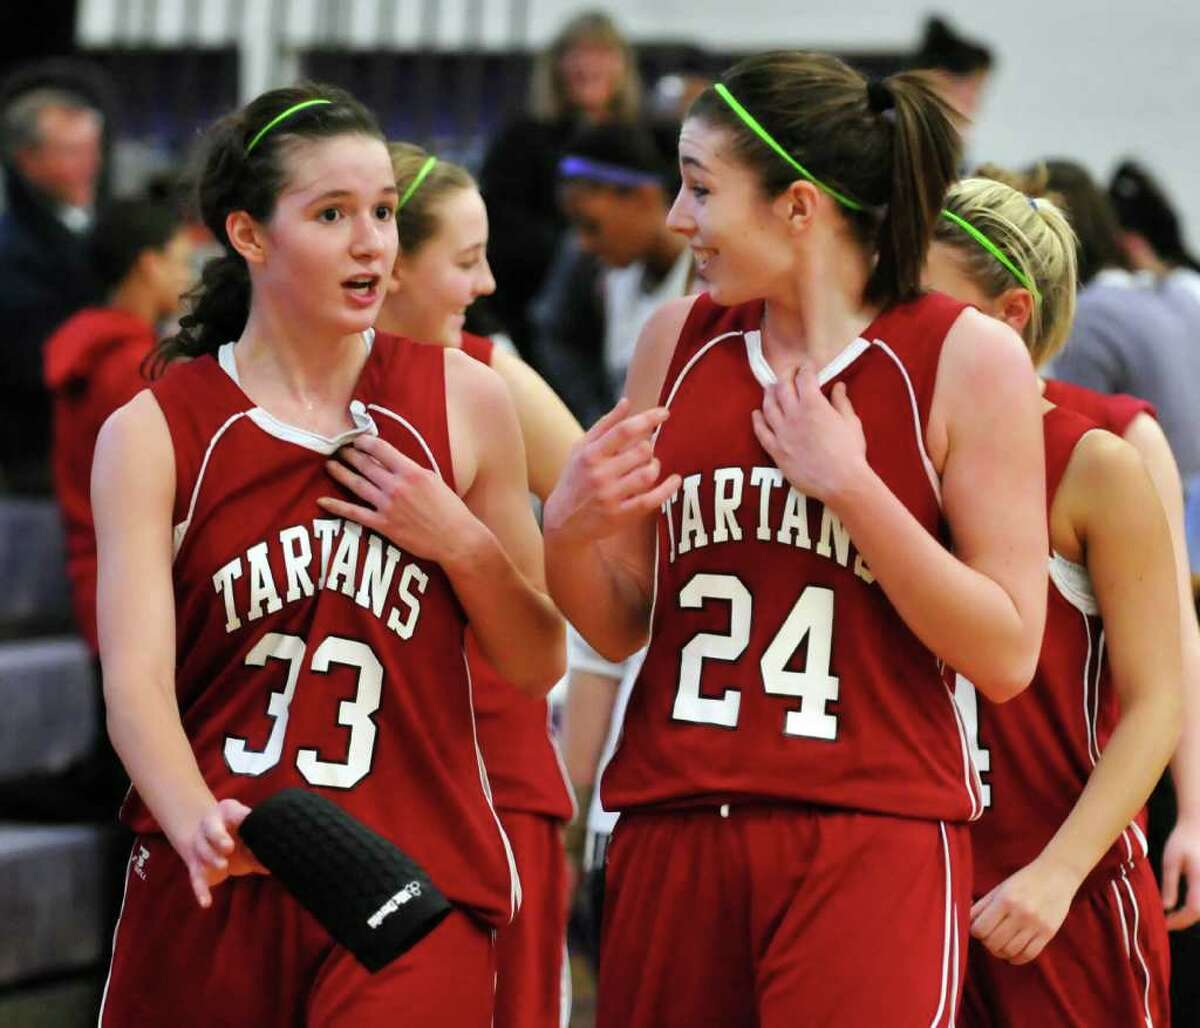 Scotia?s Sarah Janson, left, and Danielle Conley have improved their play this year and nicely complement last year?s league MVP, Cassie Broadhead. Conley is averaging 11.1 points per game, Janson 13.2. (John Carl D?Annibale/Times Union)